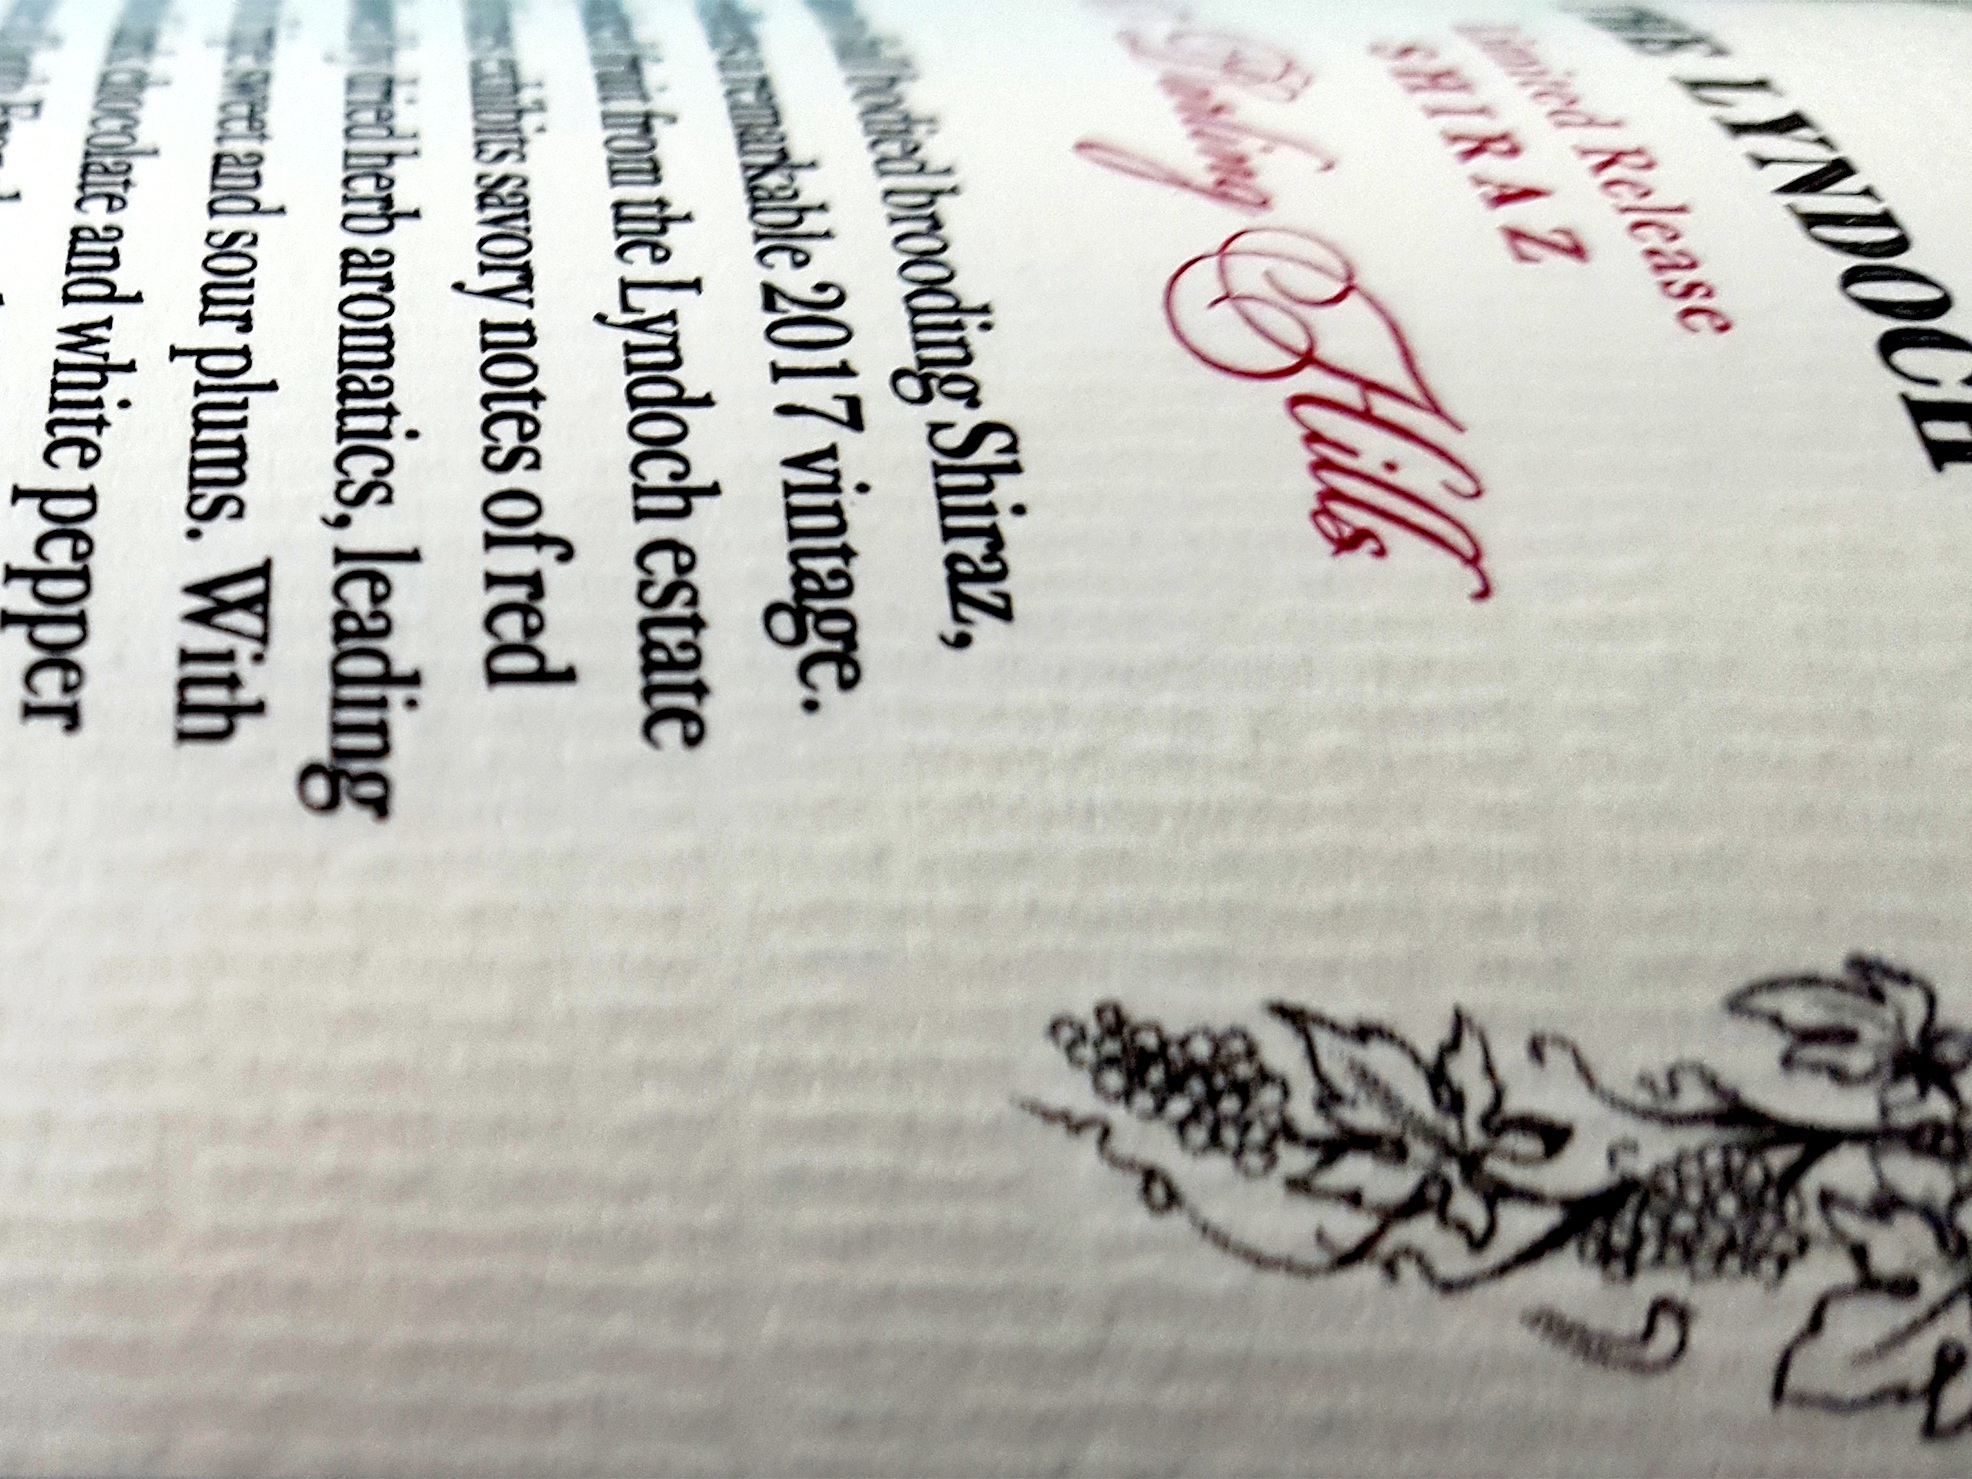 GRAINS - Embossing can also to be used create grain effects on labels, to simulate uncoated paper stocks or to add a specific texture to a finished label.